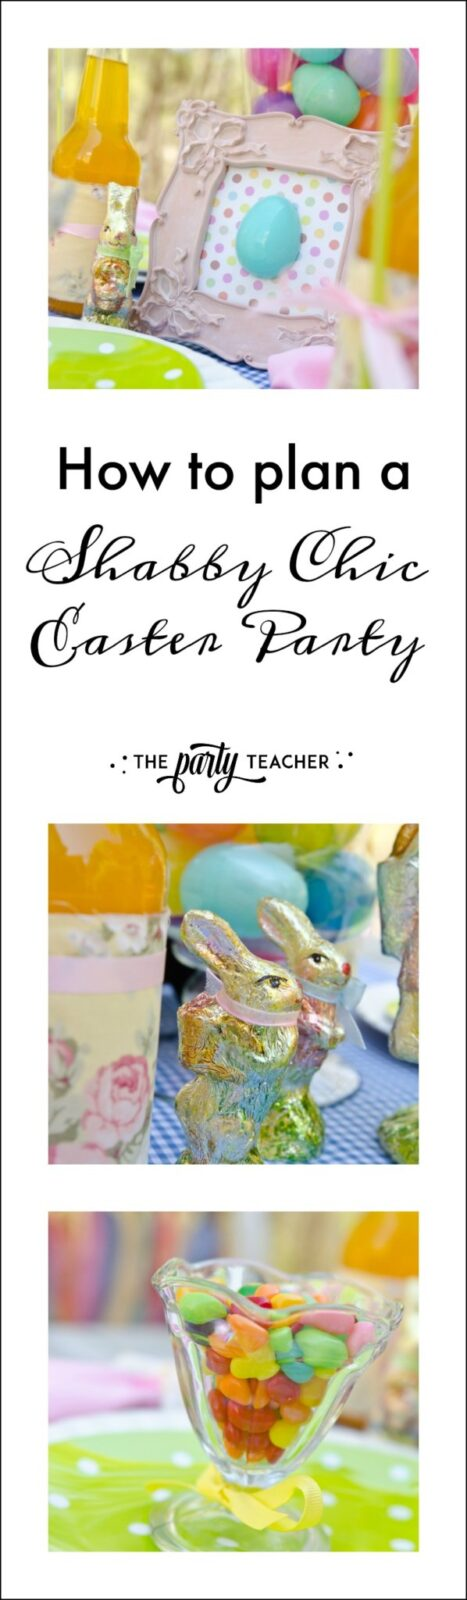 How to plan a Shabby Chic Easter Party by The Party Teacher